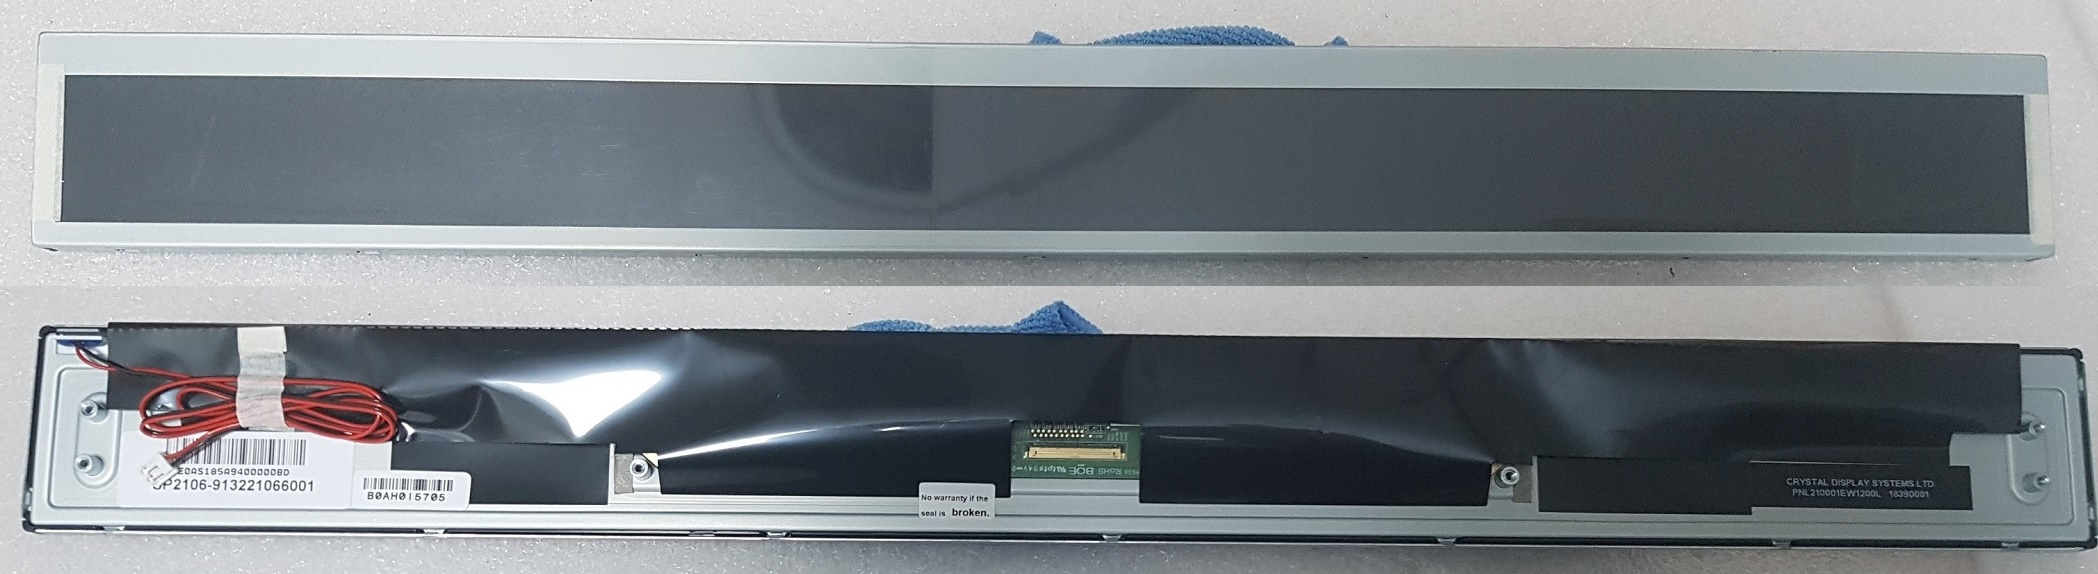 PNL-210-EW-1200-L Front and back